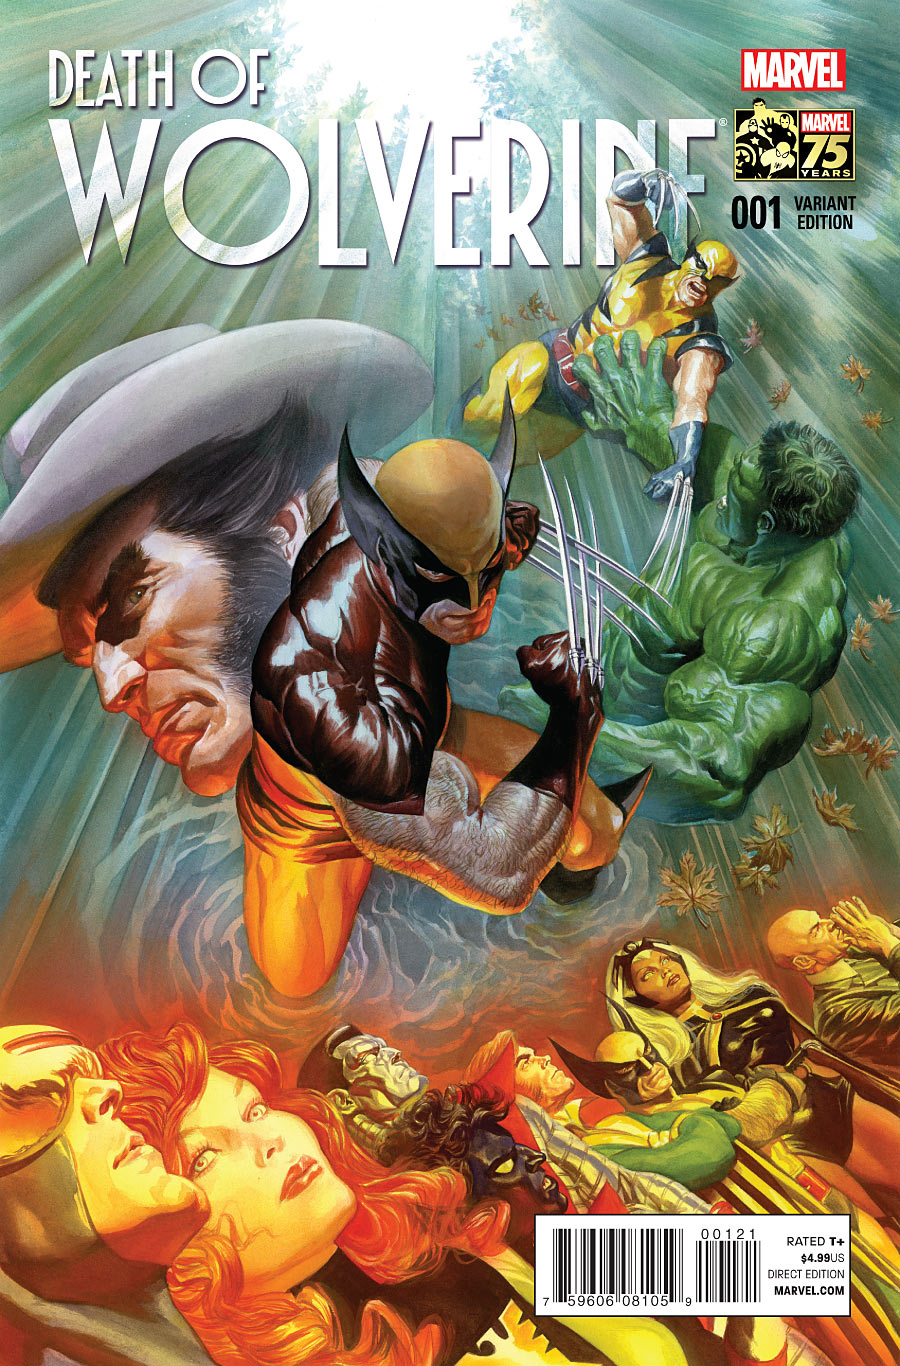 La Mort de Wolverine 1 - Death of Wolverine Part One (Alex Ross 75th Anniversary Variant Cover)